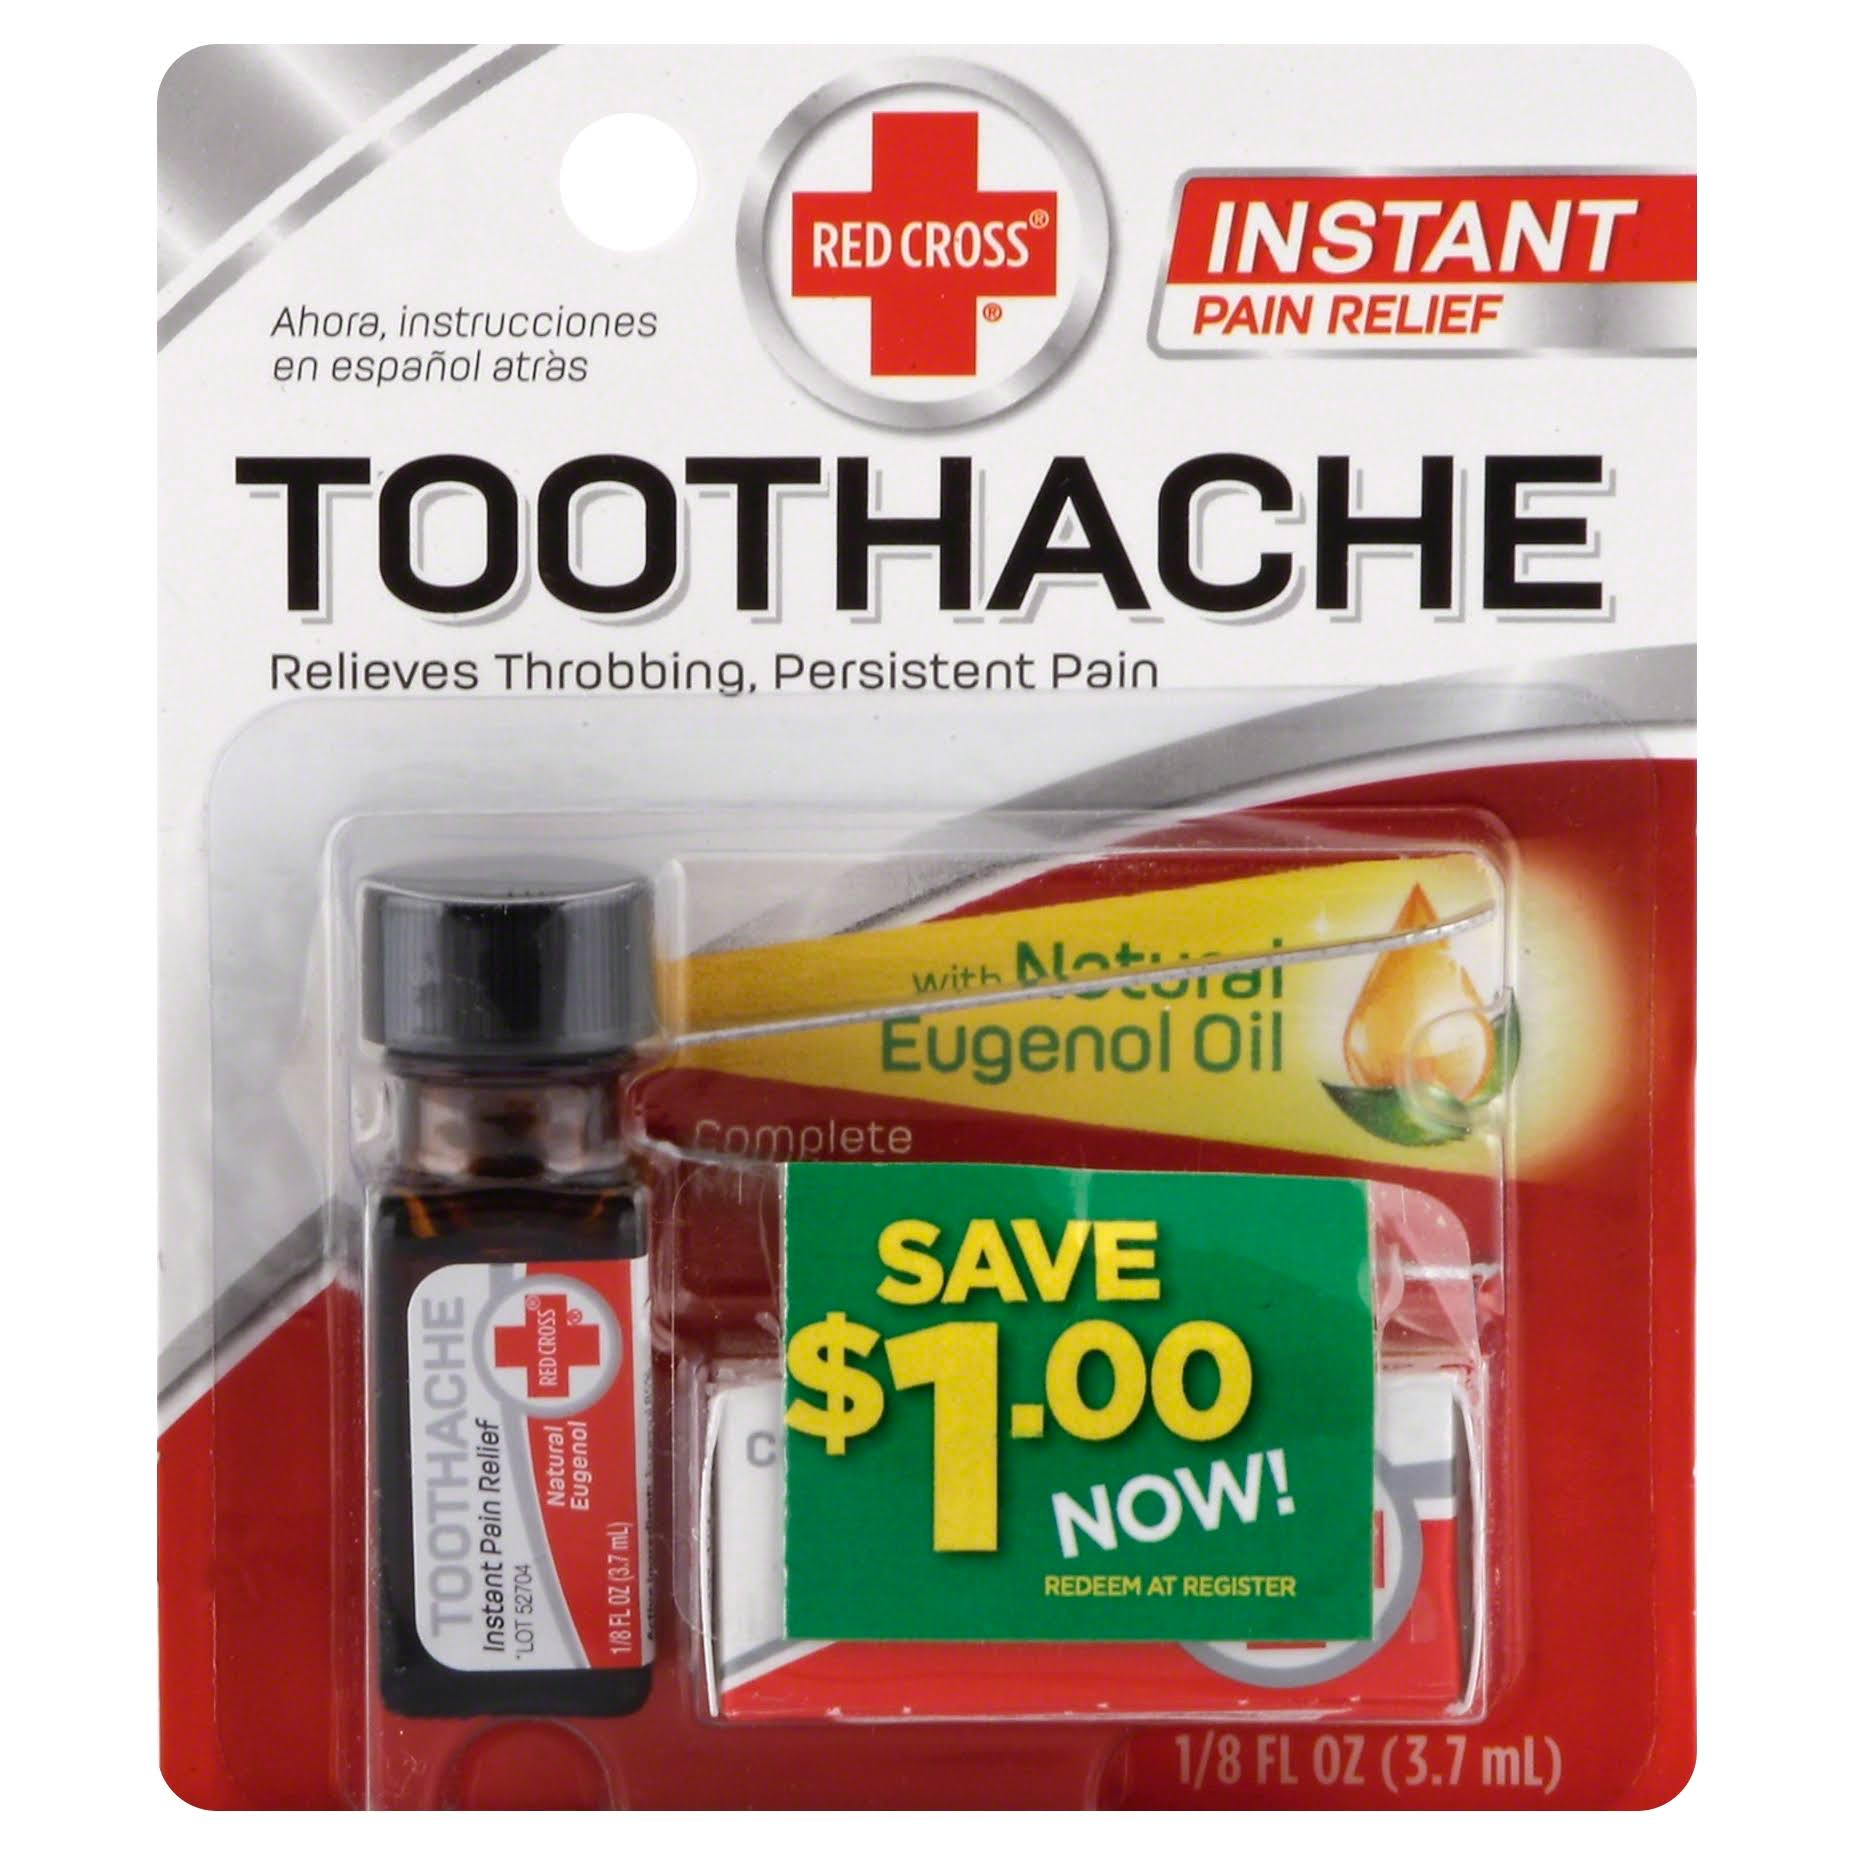 Red Cross Toothache Complete Medication Kit - 3.7ml